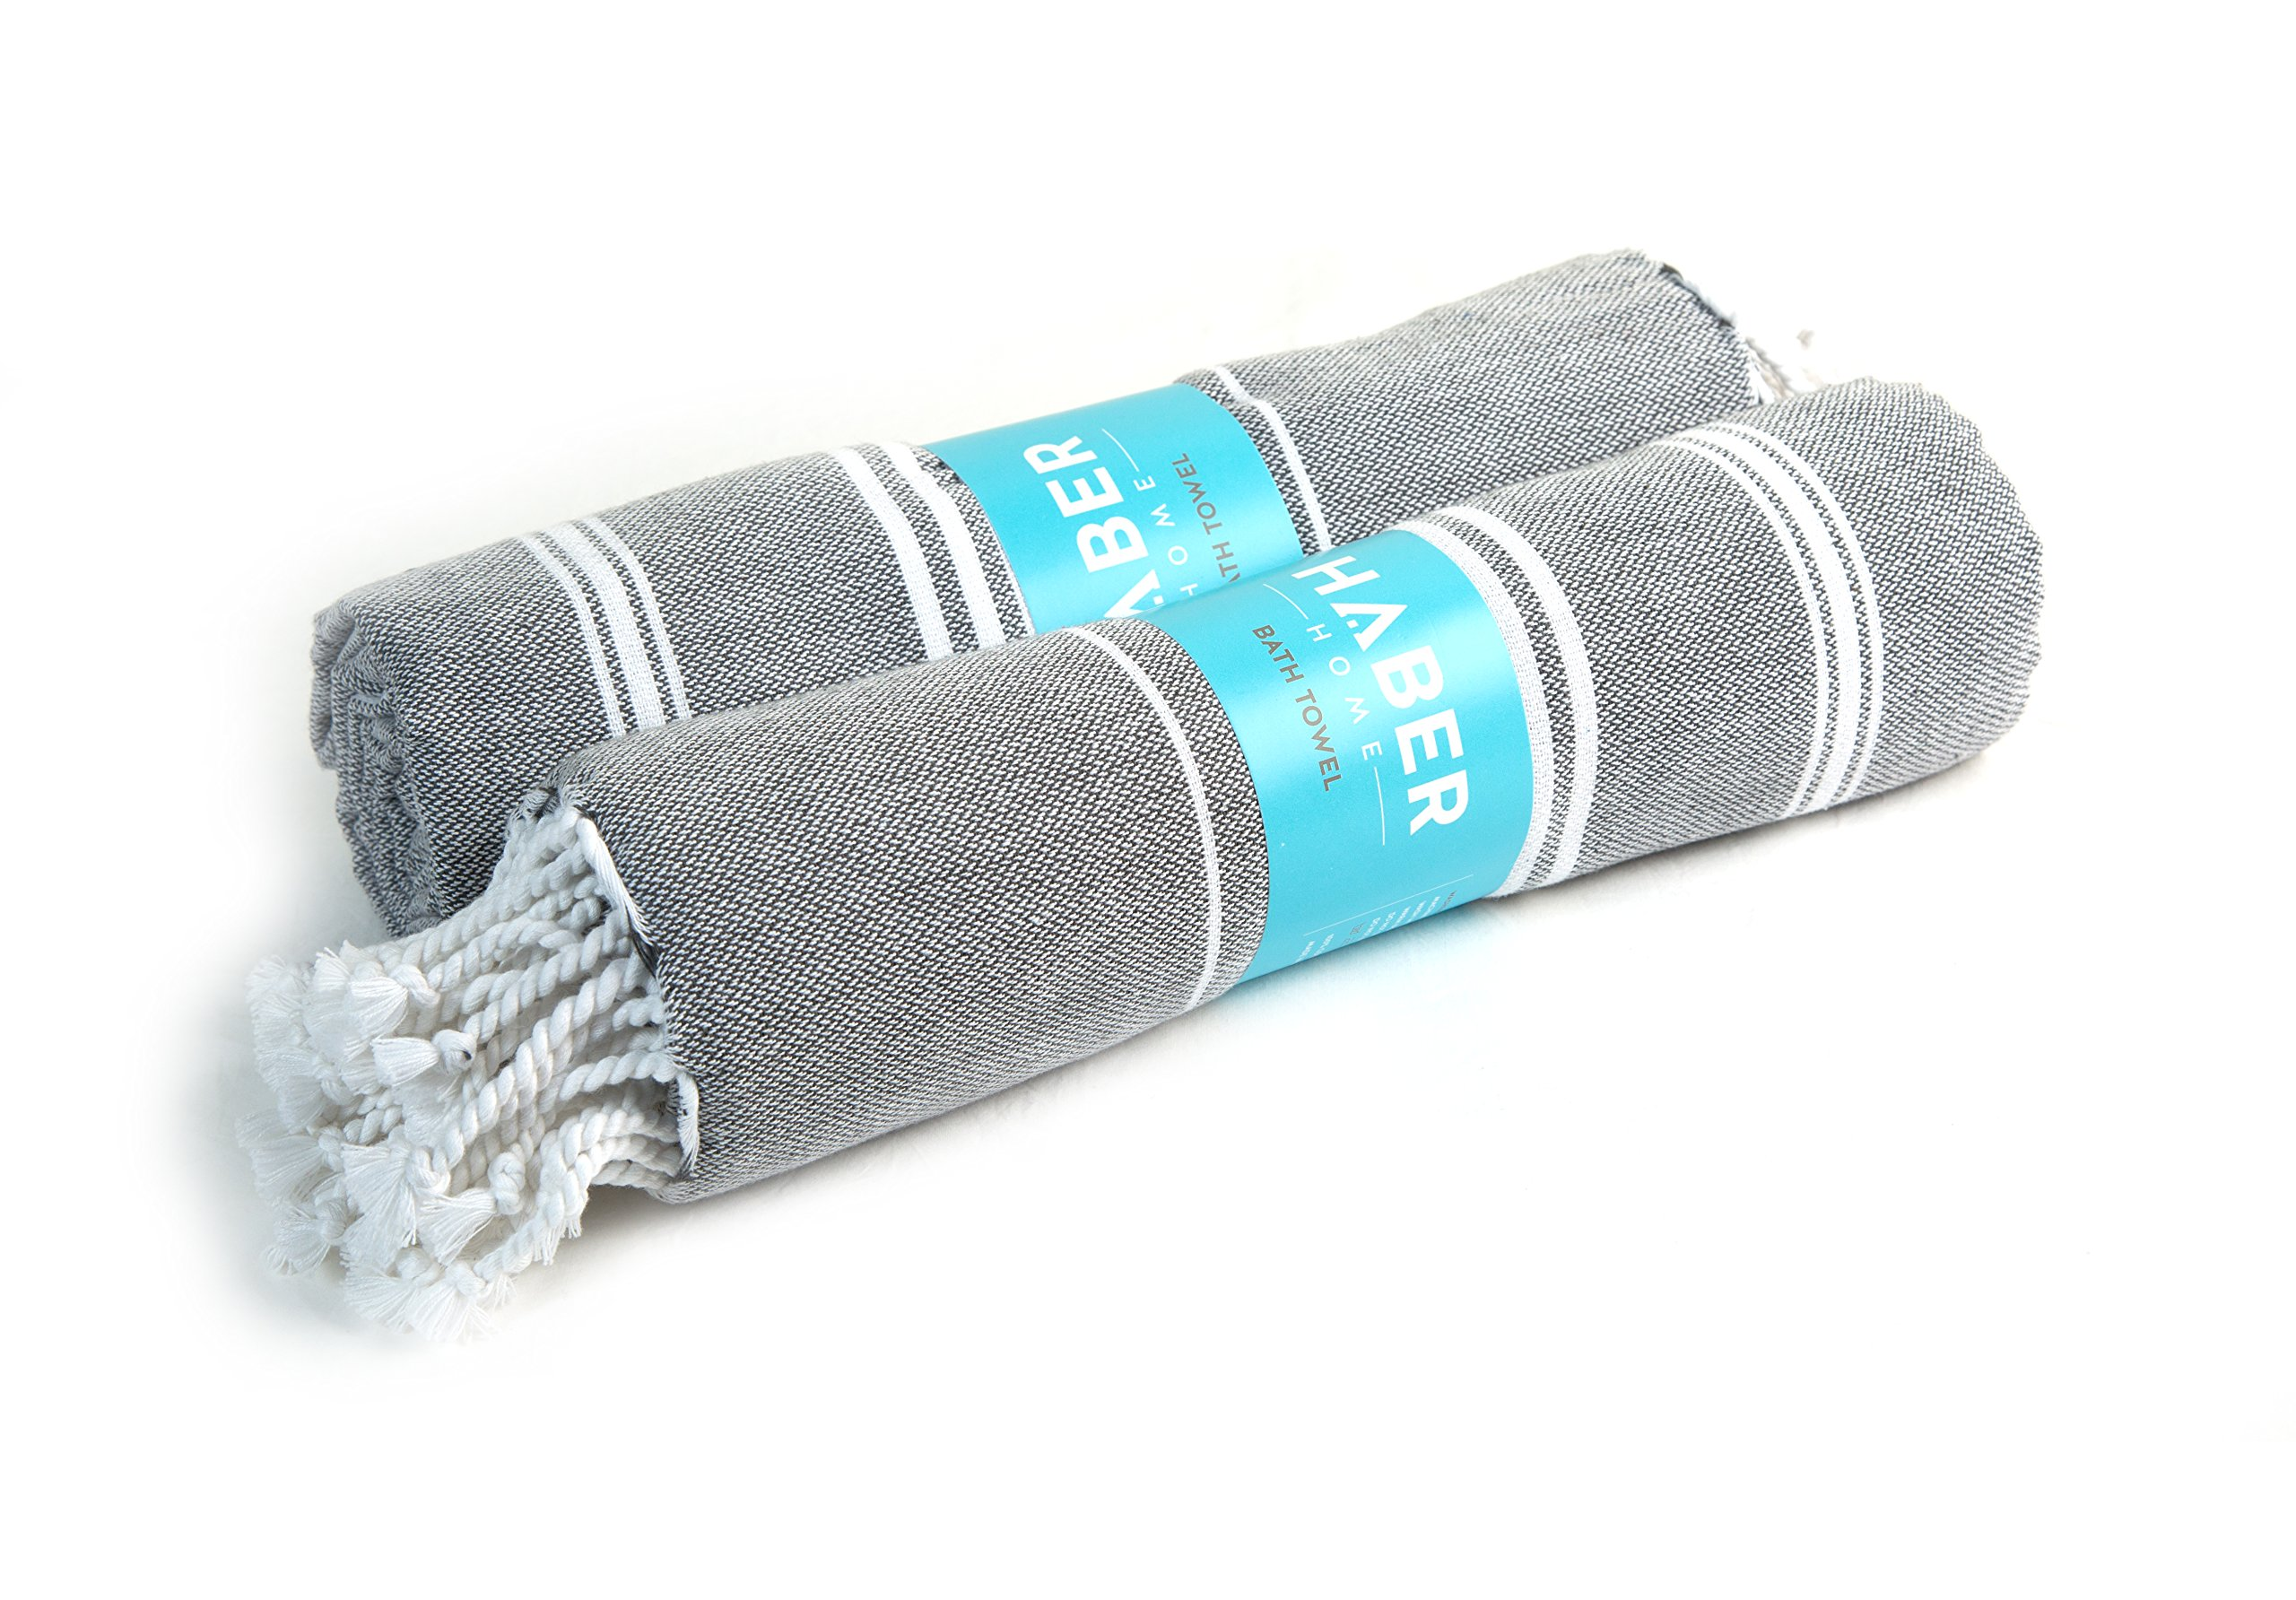 HABER Turkish Cotton Towels - Pack of 2, Luxury Bath Unisex Towels, Quick Dry Medium Size Soft Towel for Gym, Yoga, Travel & Camping 30'' X 60'' (Grey & Grey)